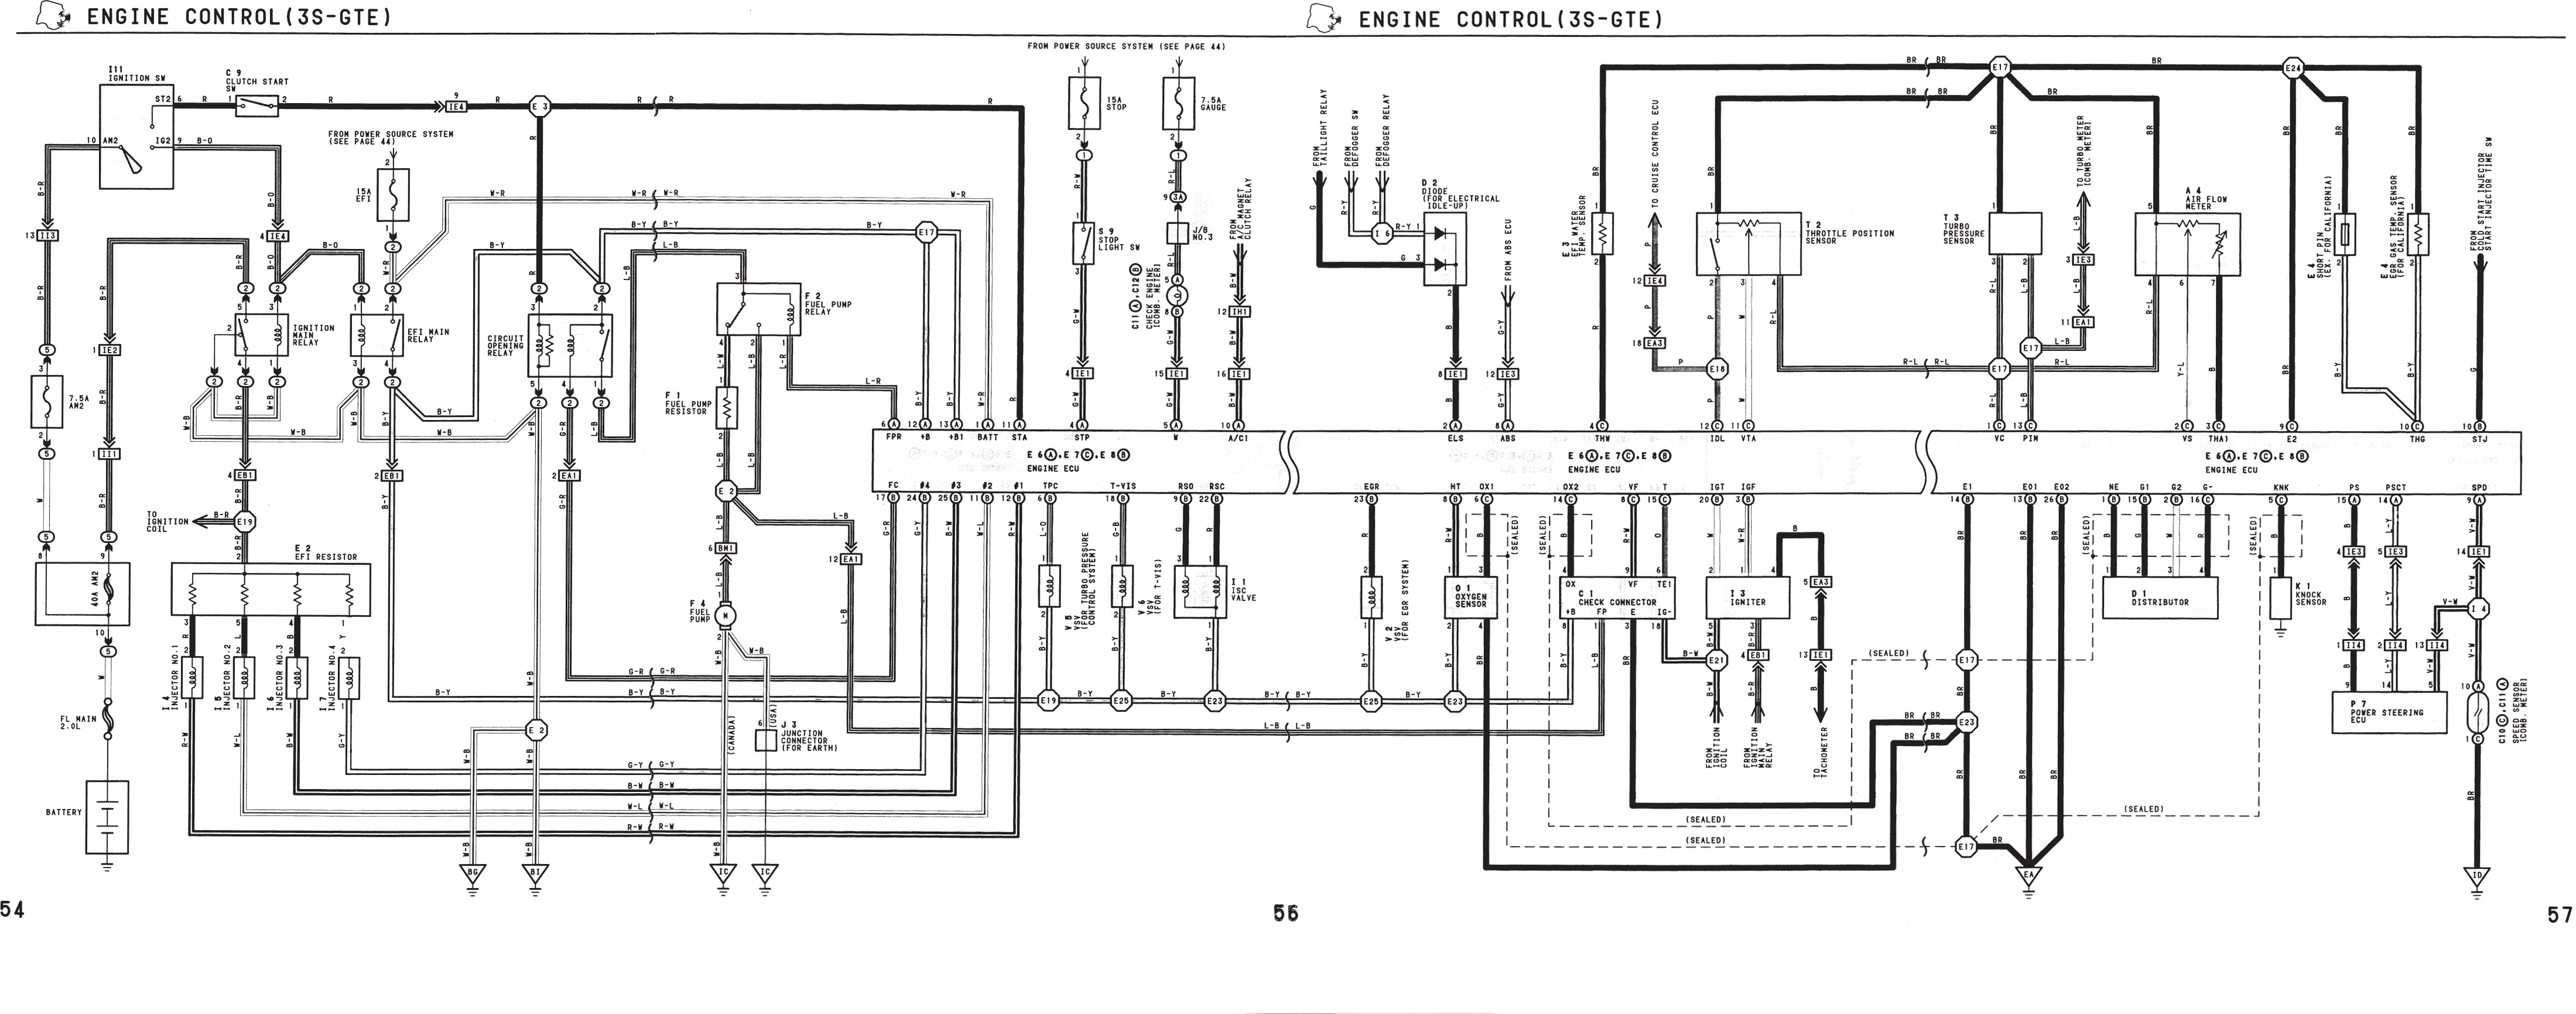 91 mr2 wiring diagram cam